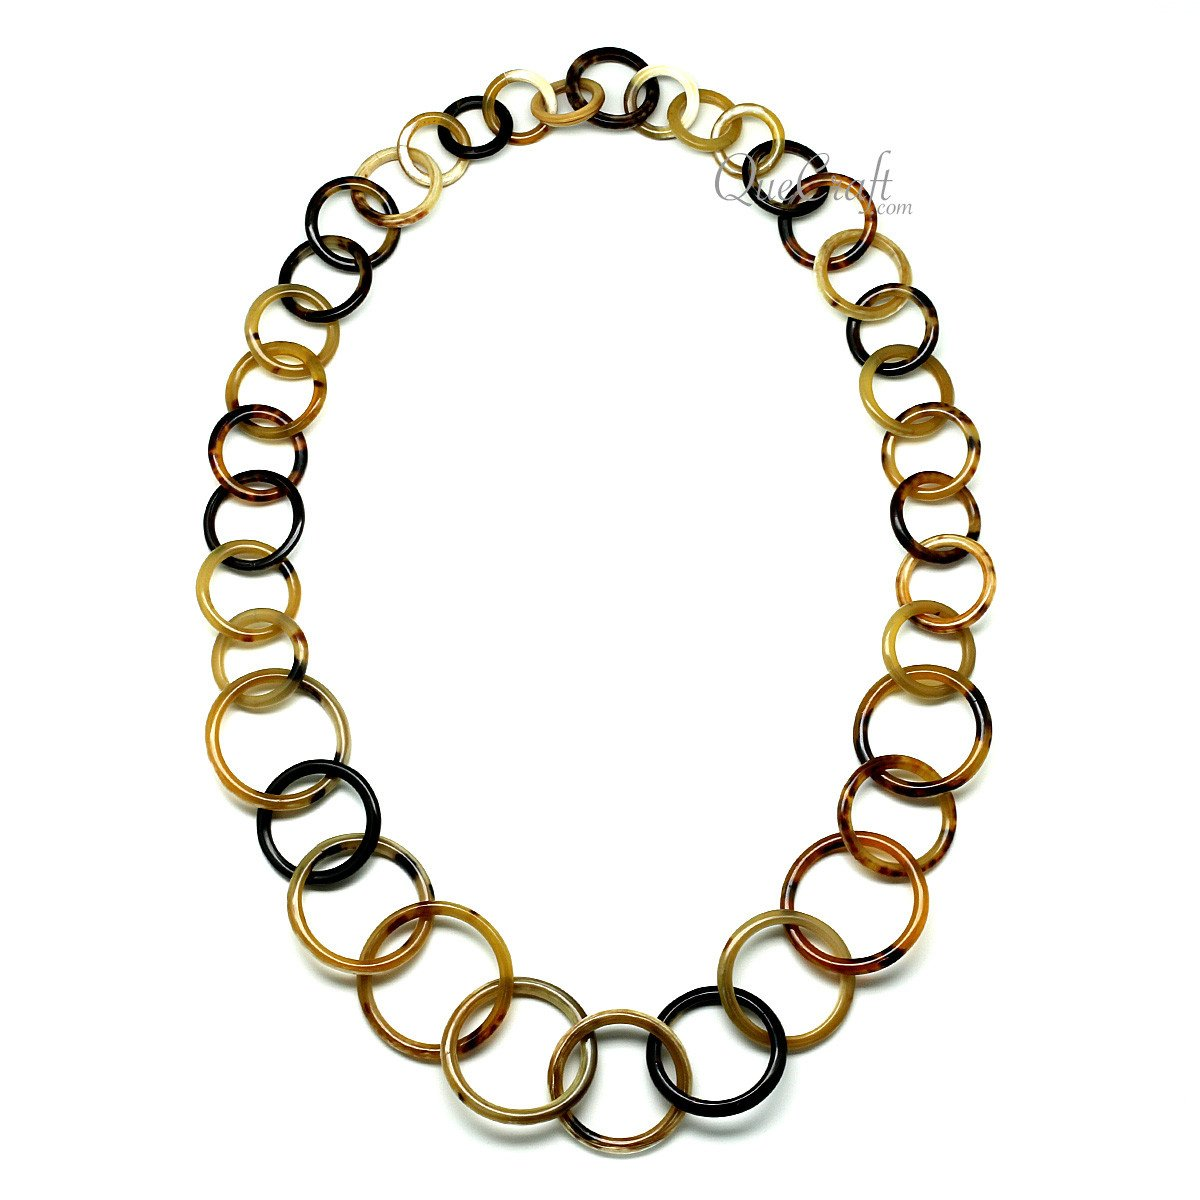 Horn Chain Necklace #11809 - HORN.JEWELRY by QueCraft